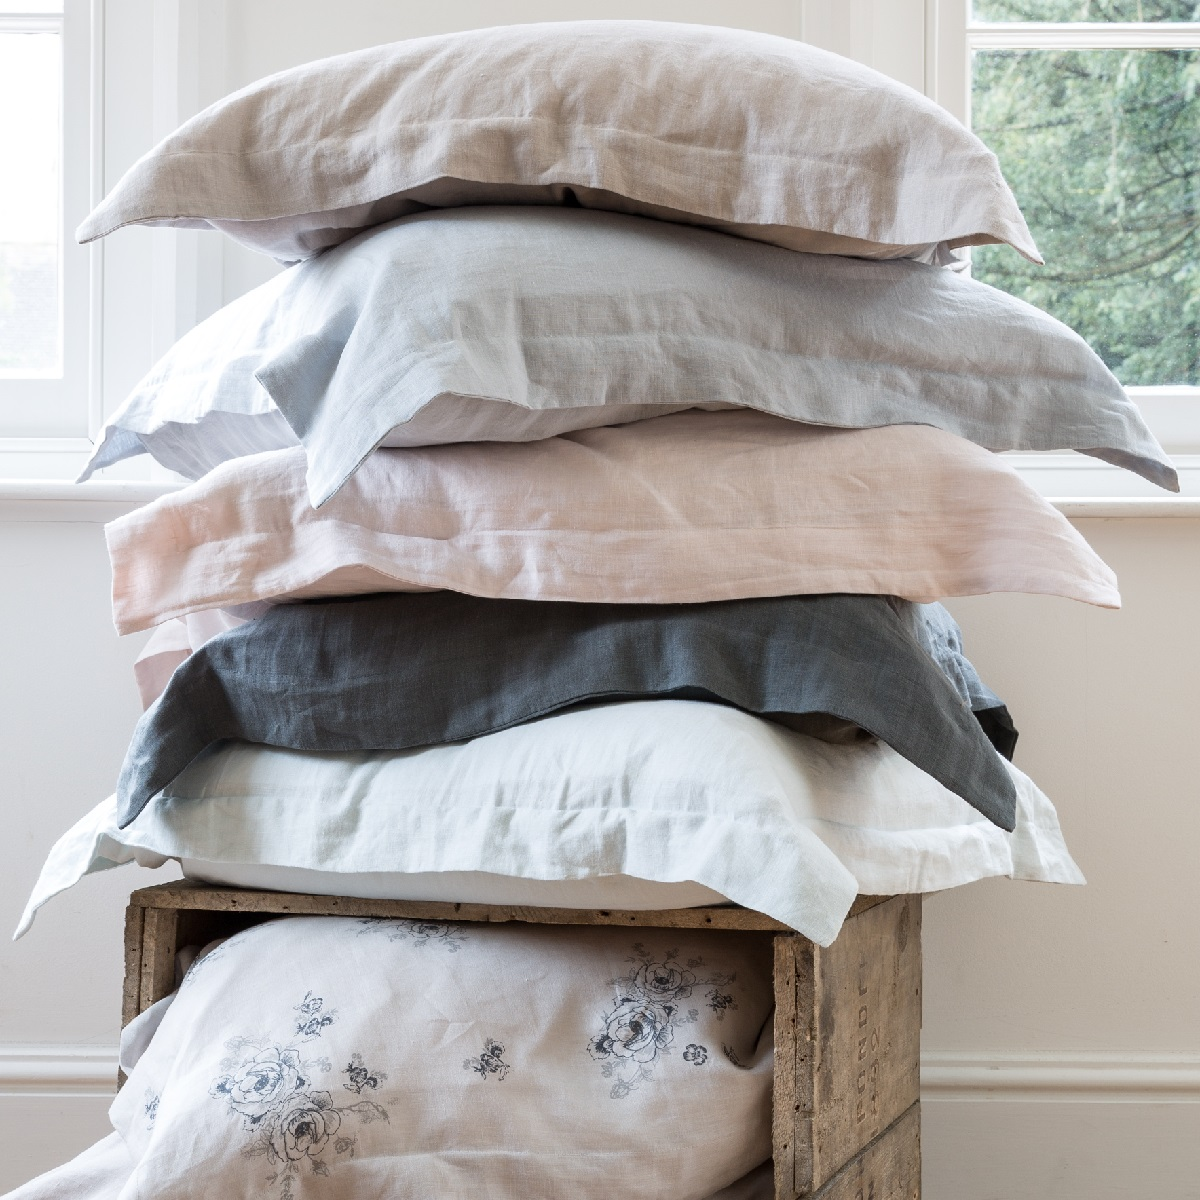 Bed Linen Care Guide